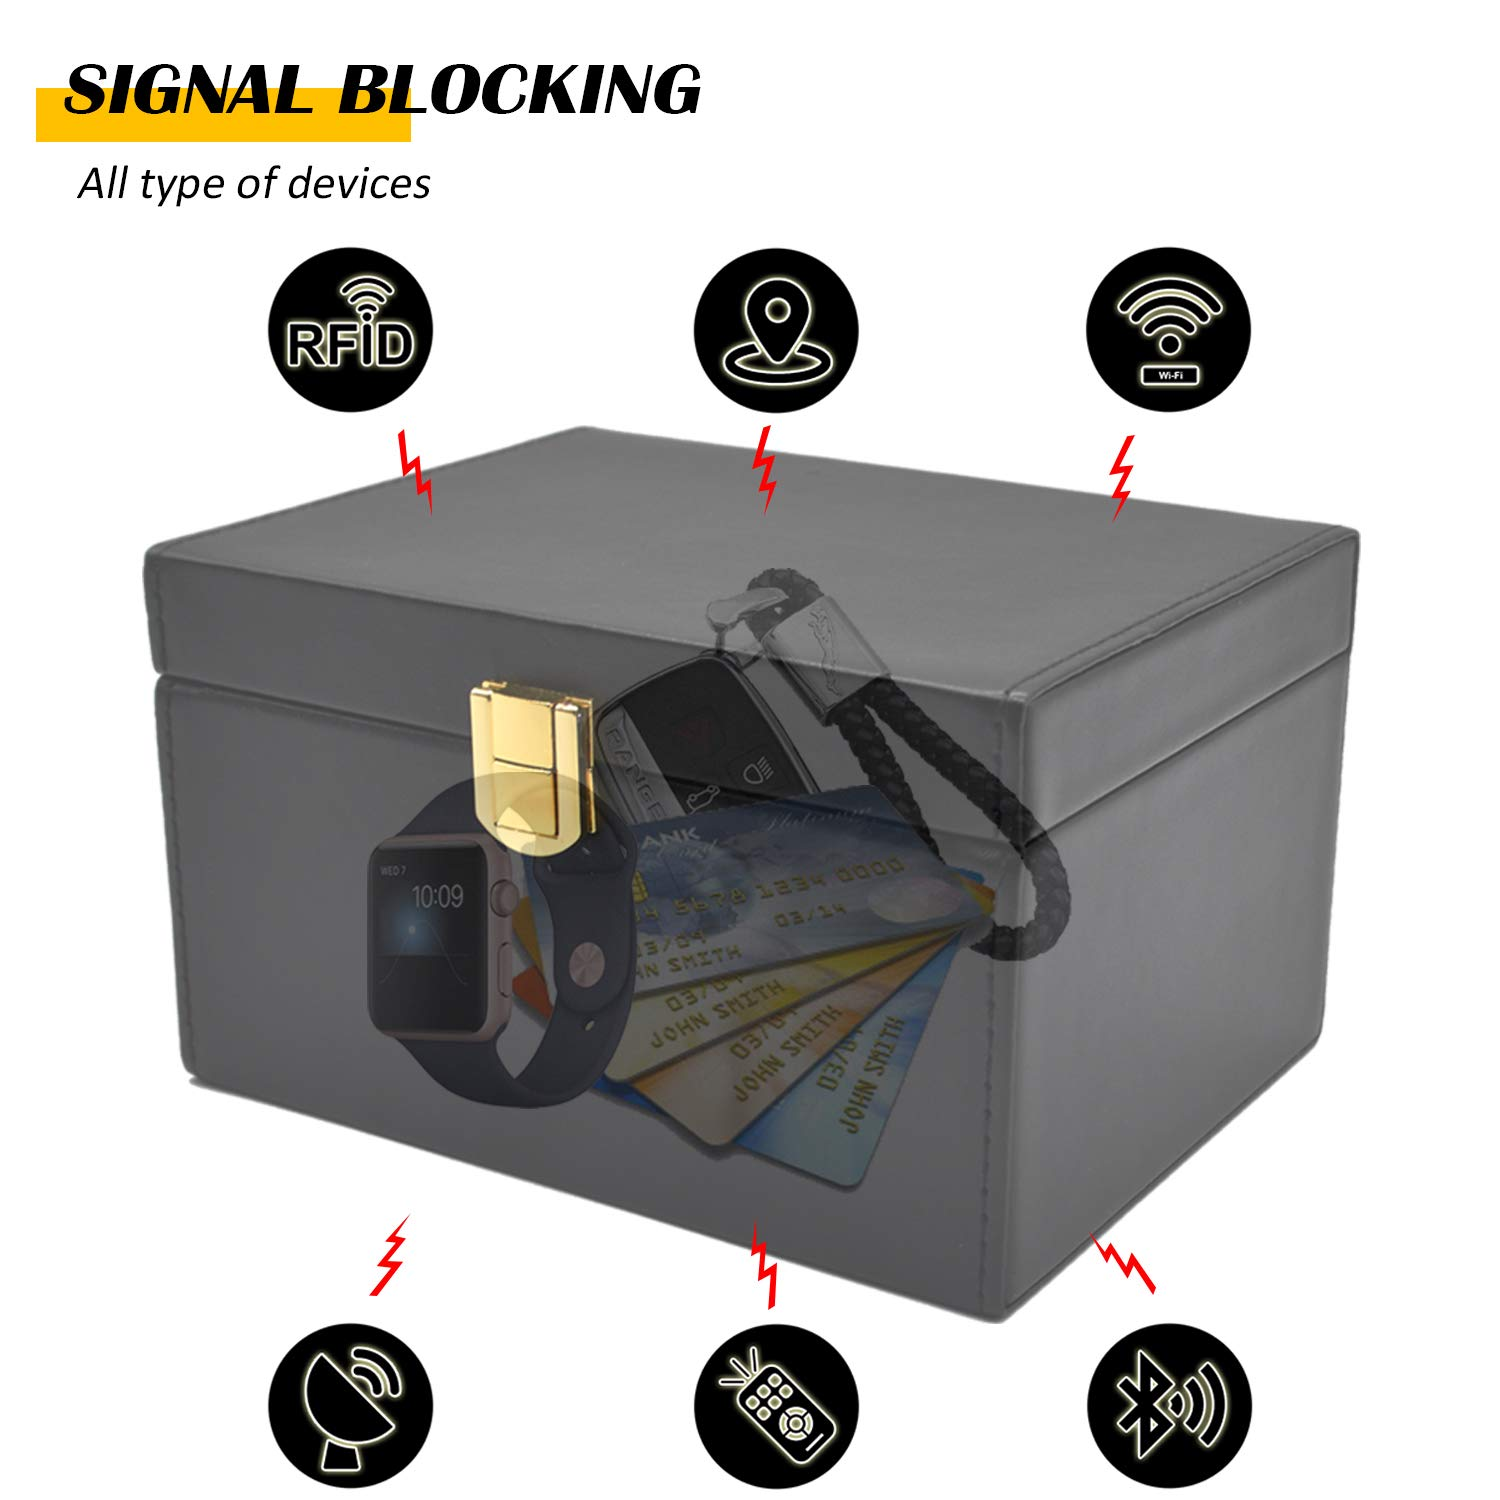 RFID Signal Blocking Box Faraday Bag Signal Blocking Bag Shielding Pouch Wallet Case for Car Key Faraday Key Fob Protector Box